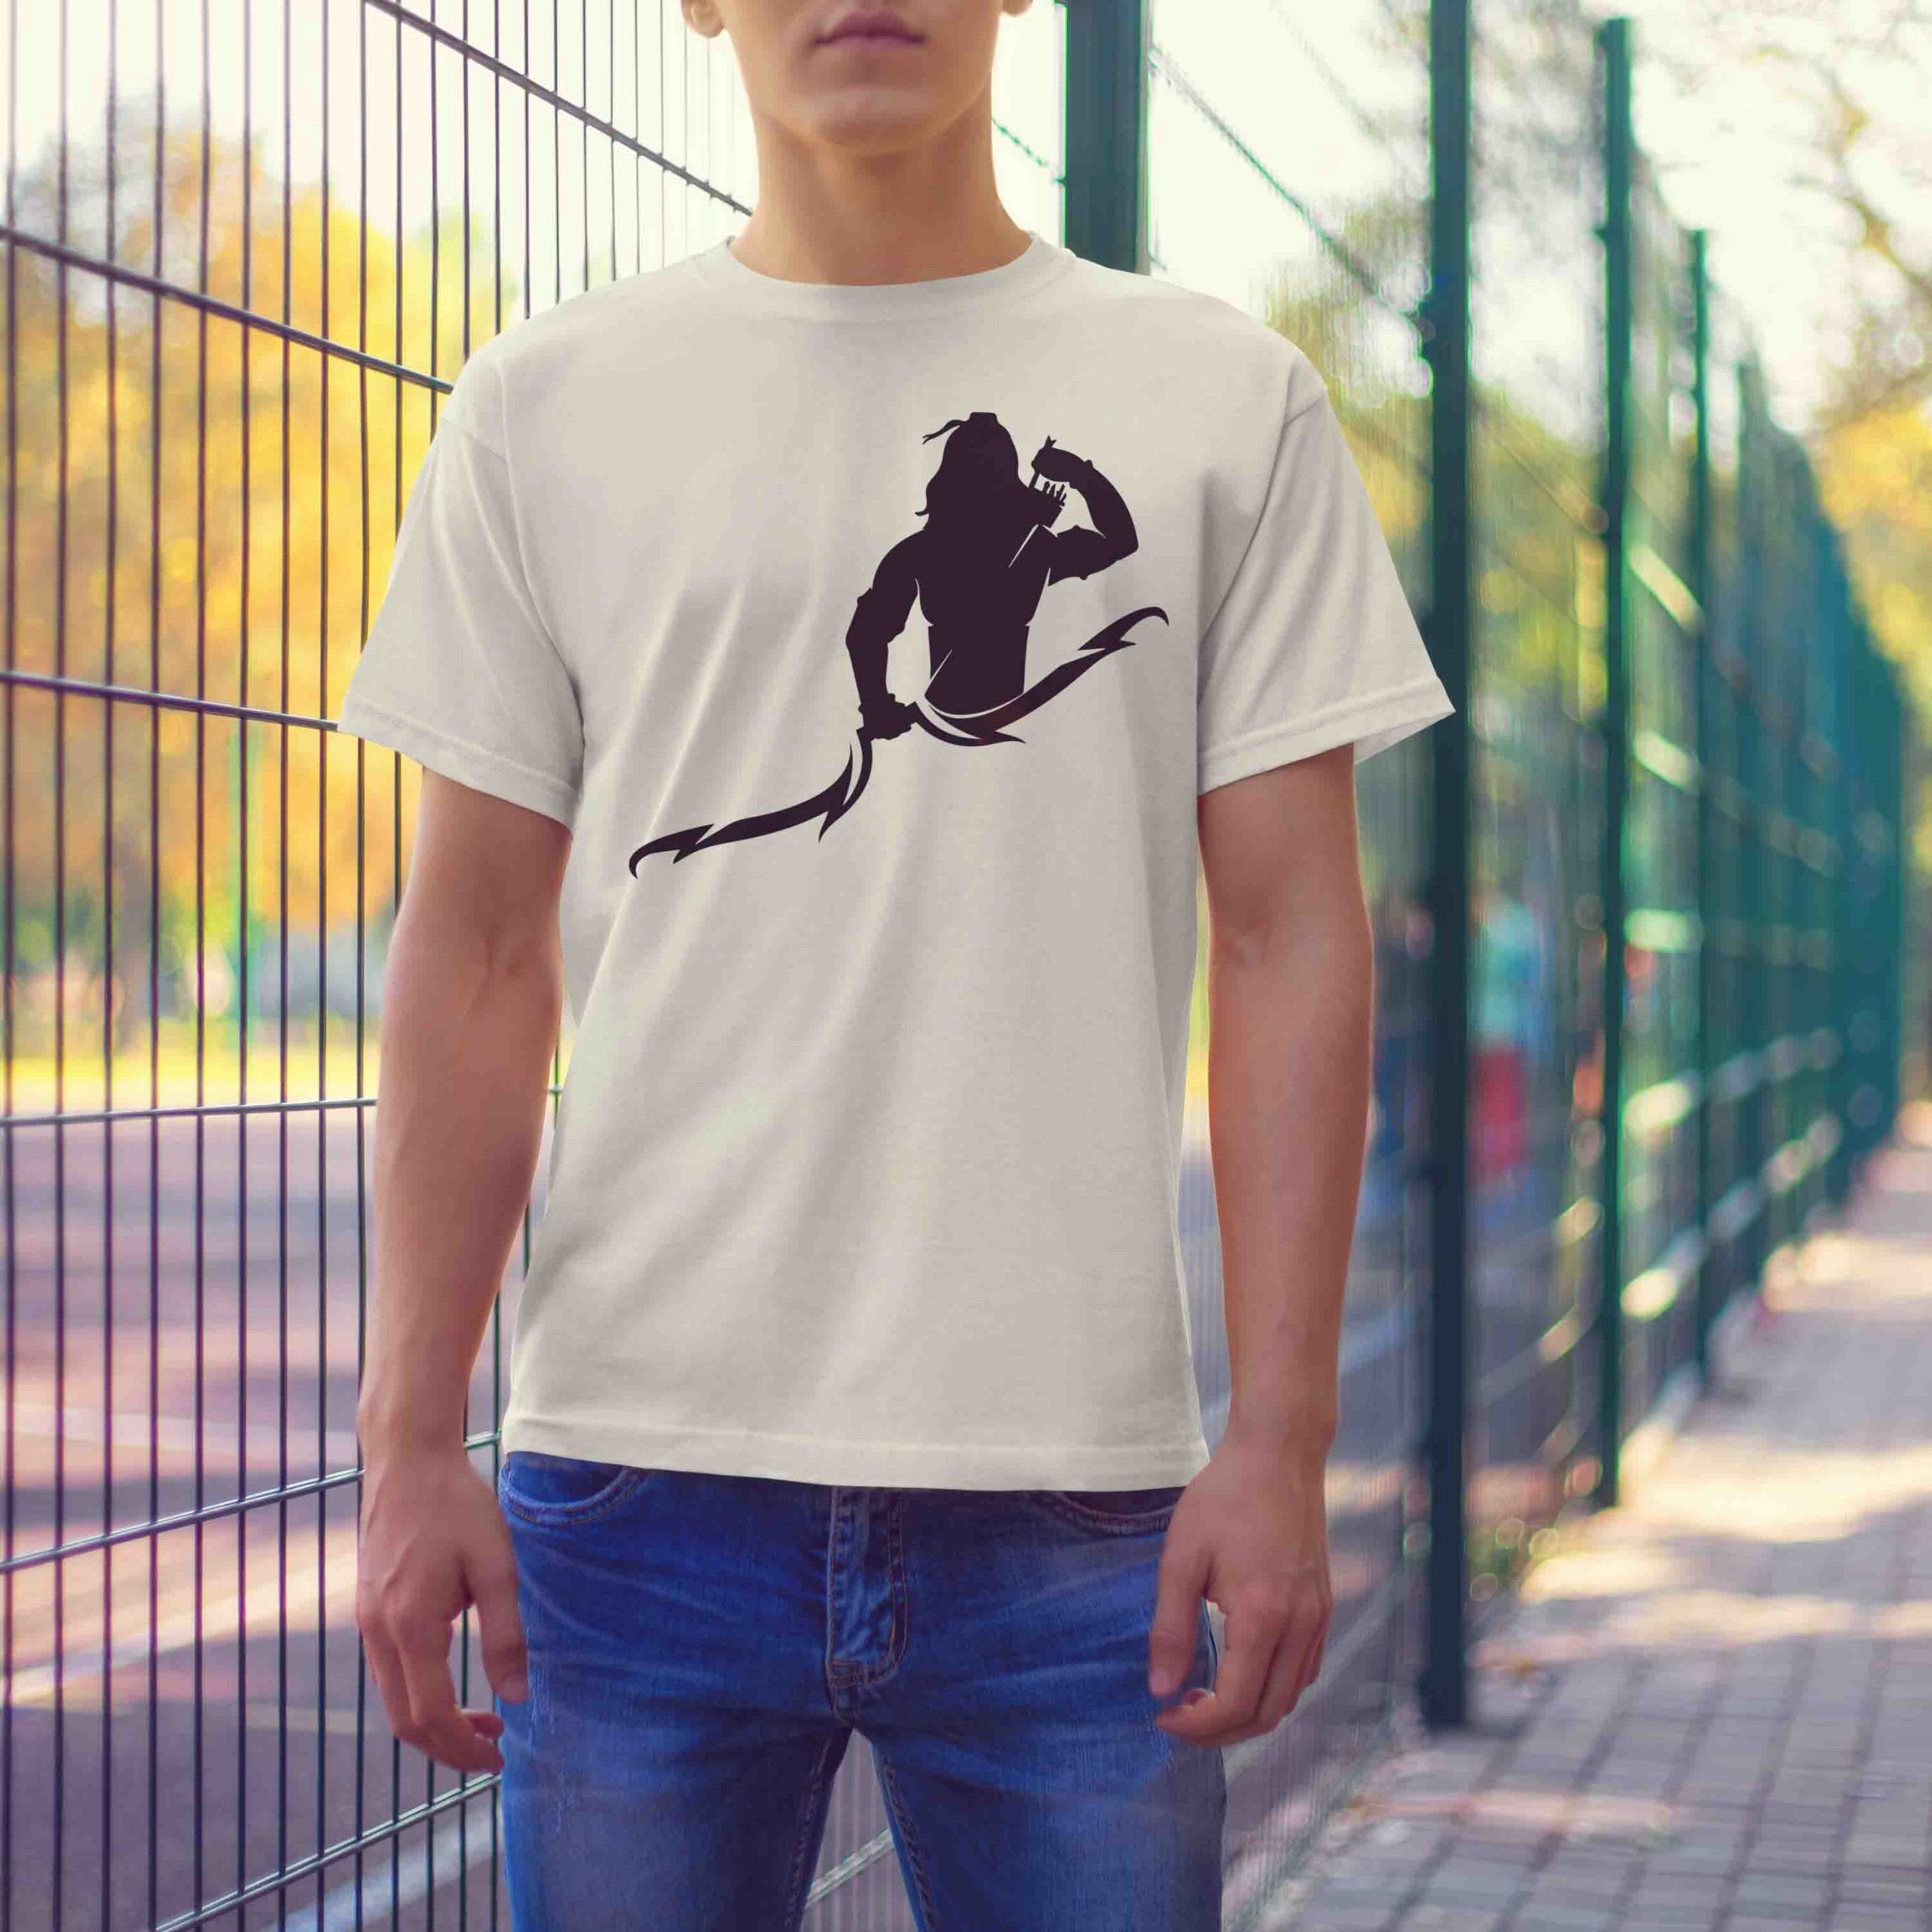 Lord Ram Black Sketch round neck t shirt for men